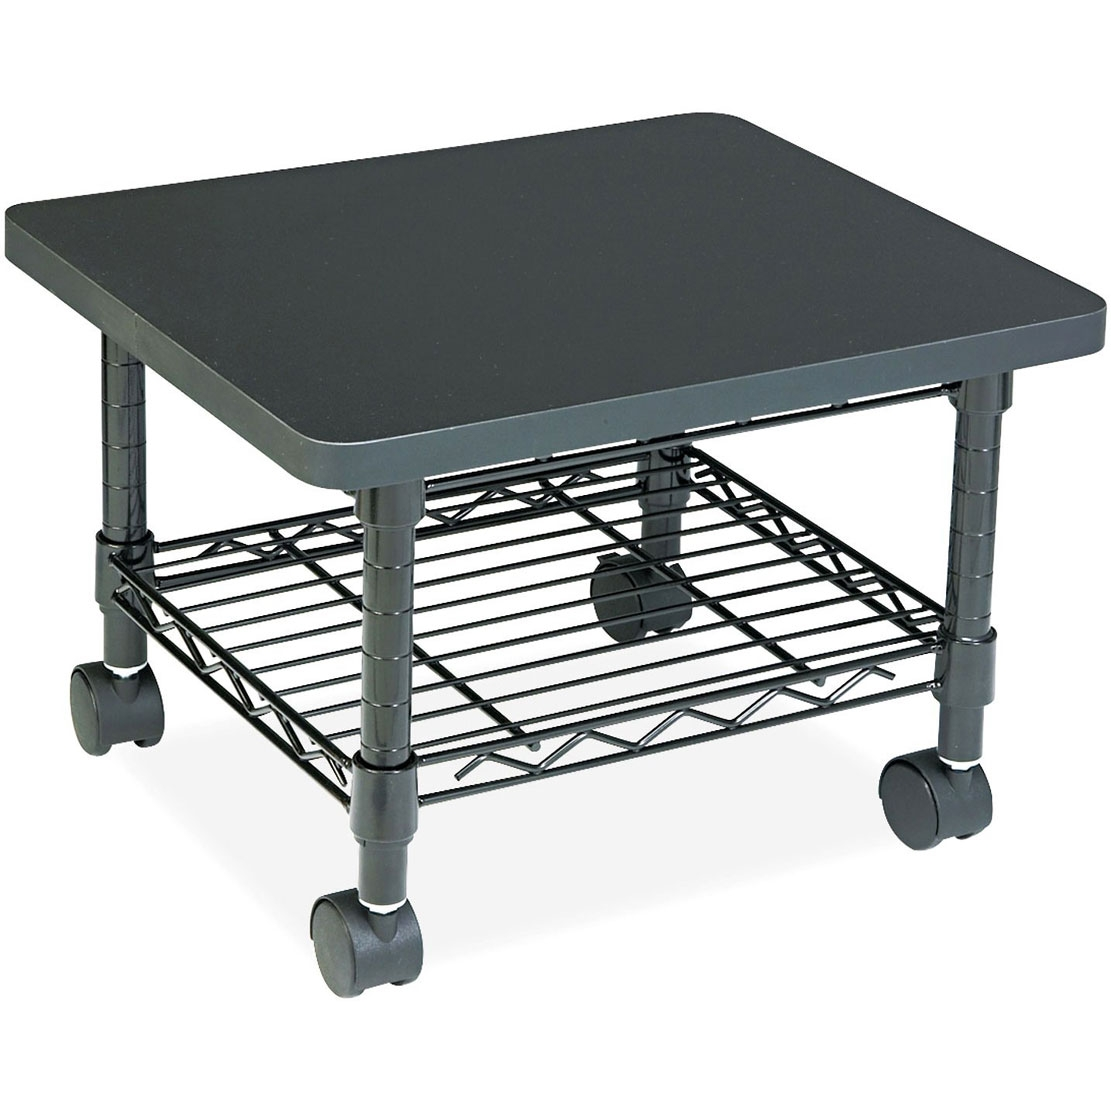 drawer organizing with mobile x printer desk side kantek black com amazon dp shelf stand products office